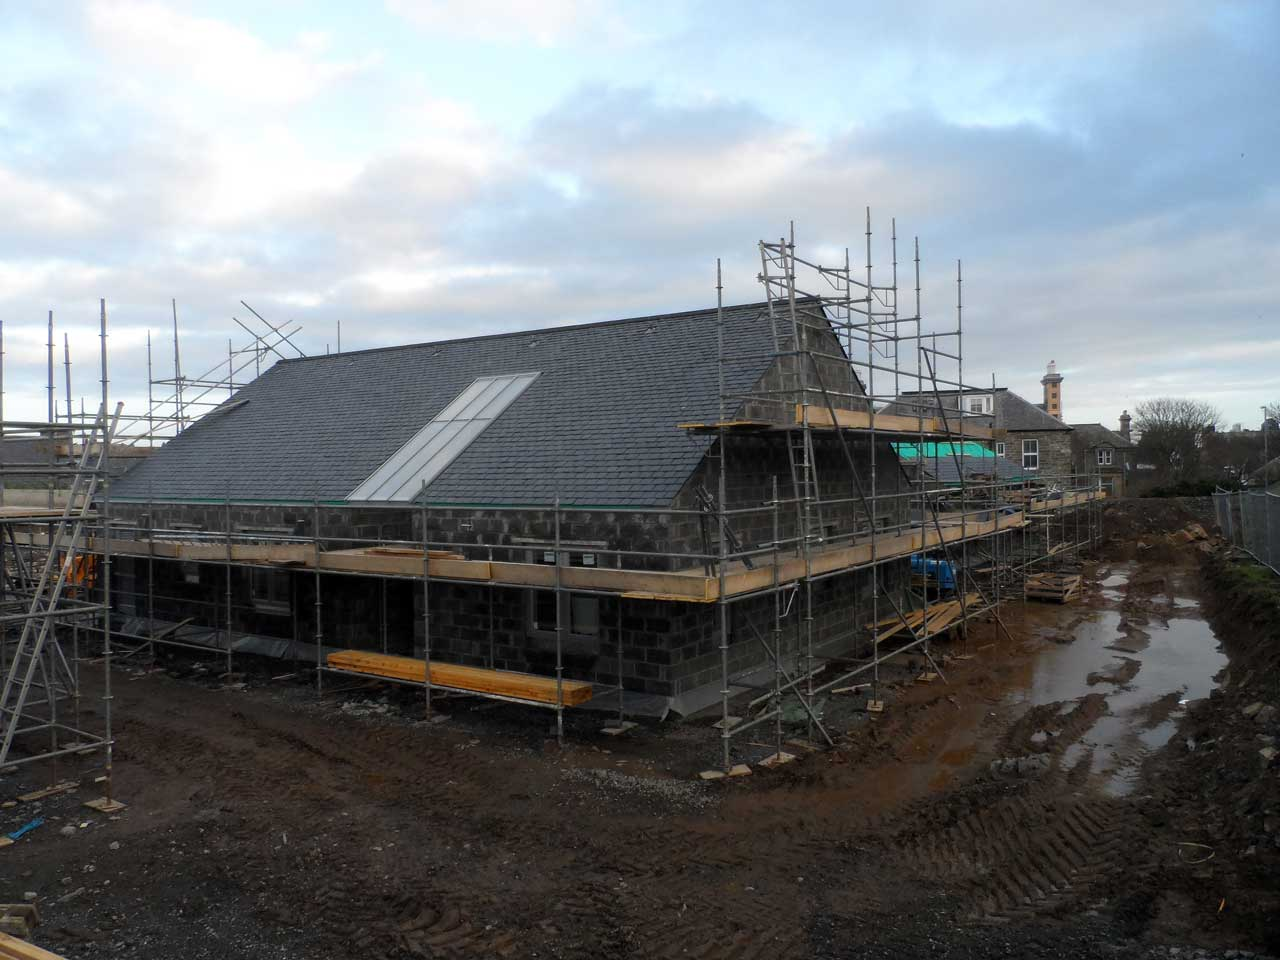 Photo: New Children's Home In Wick 20 December 2013